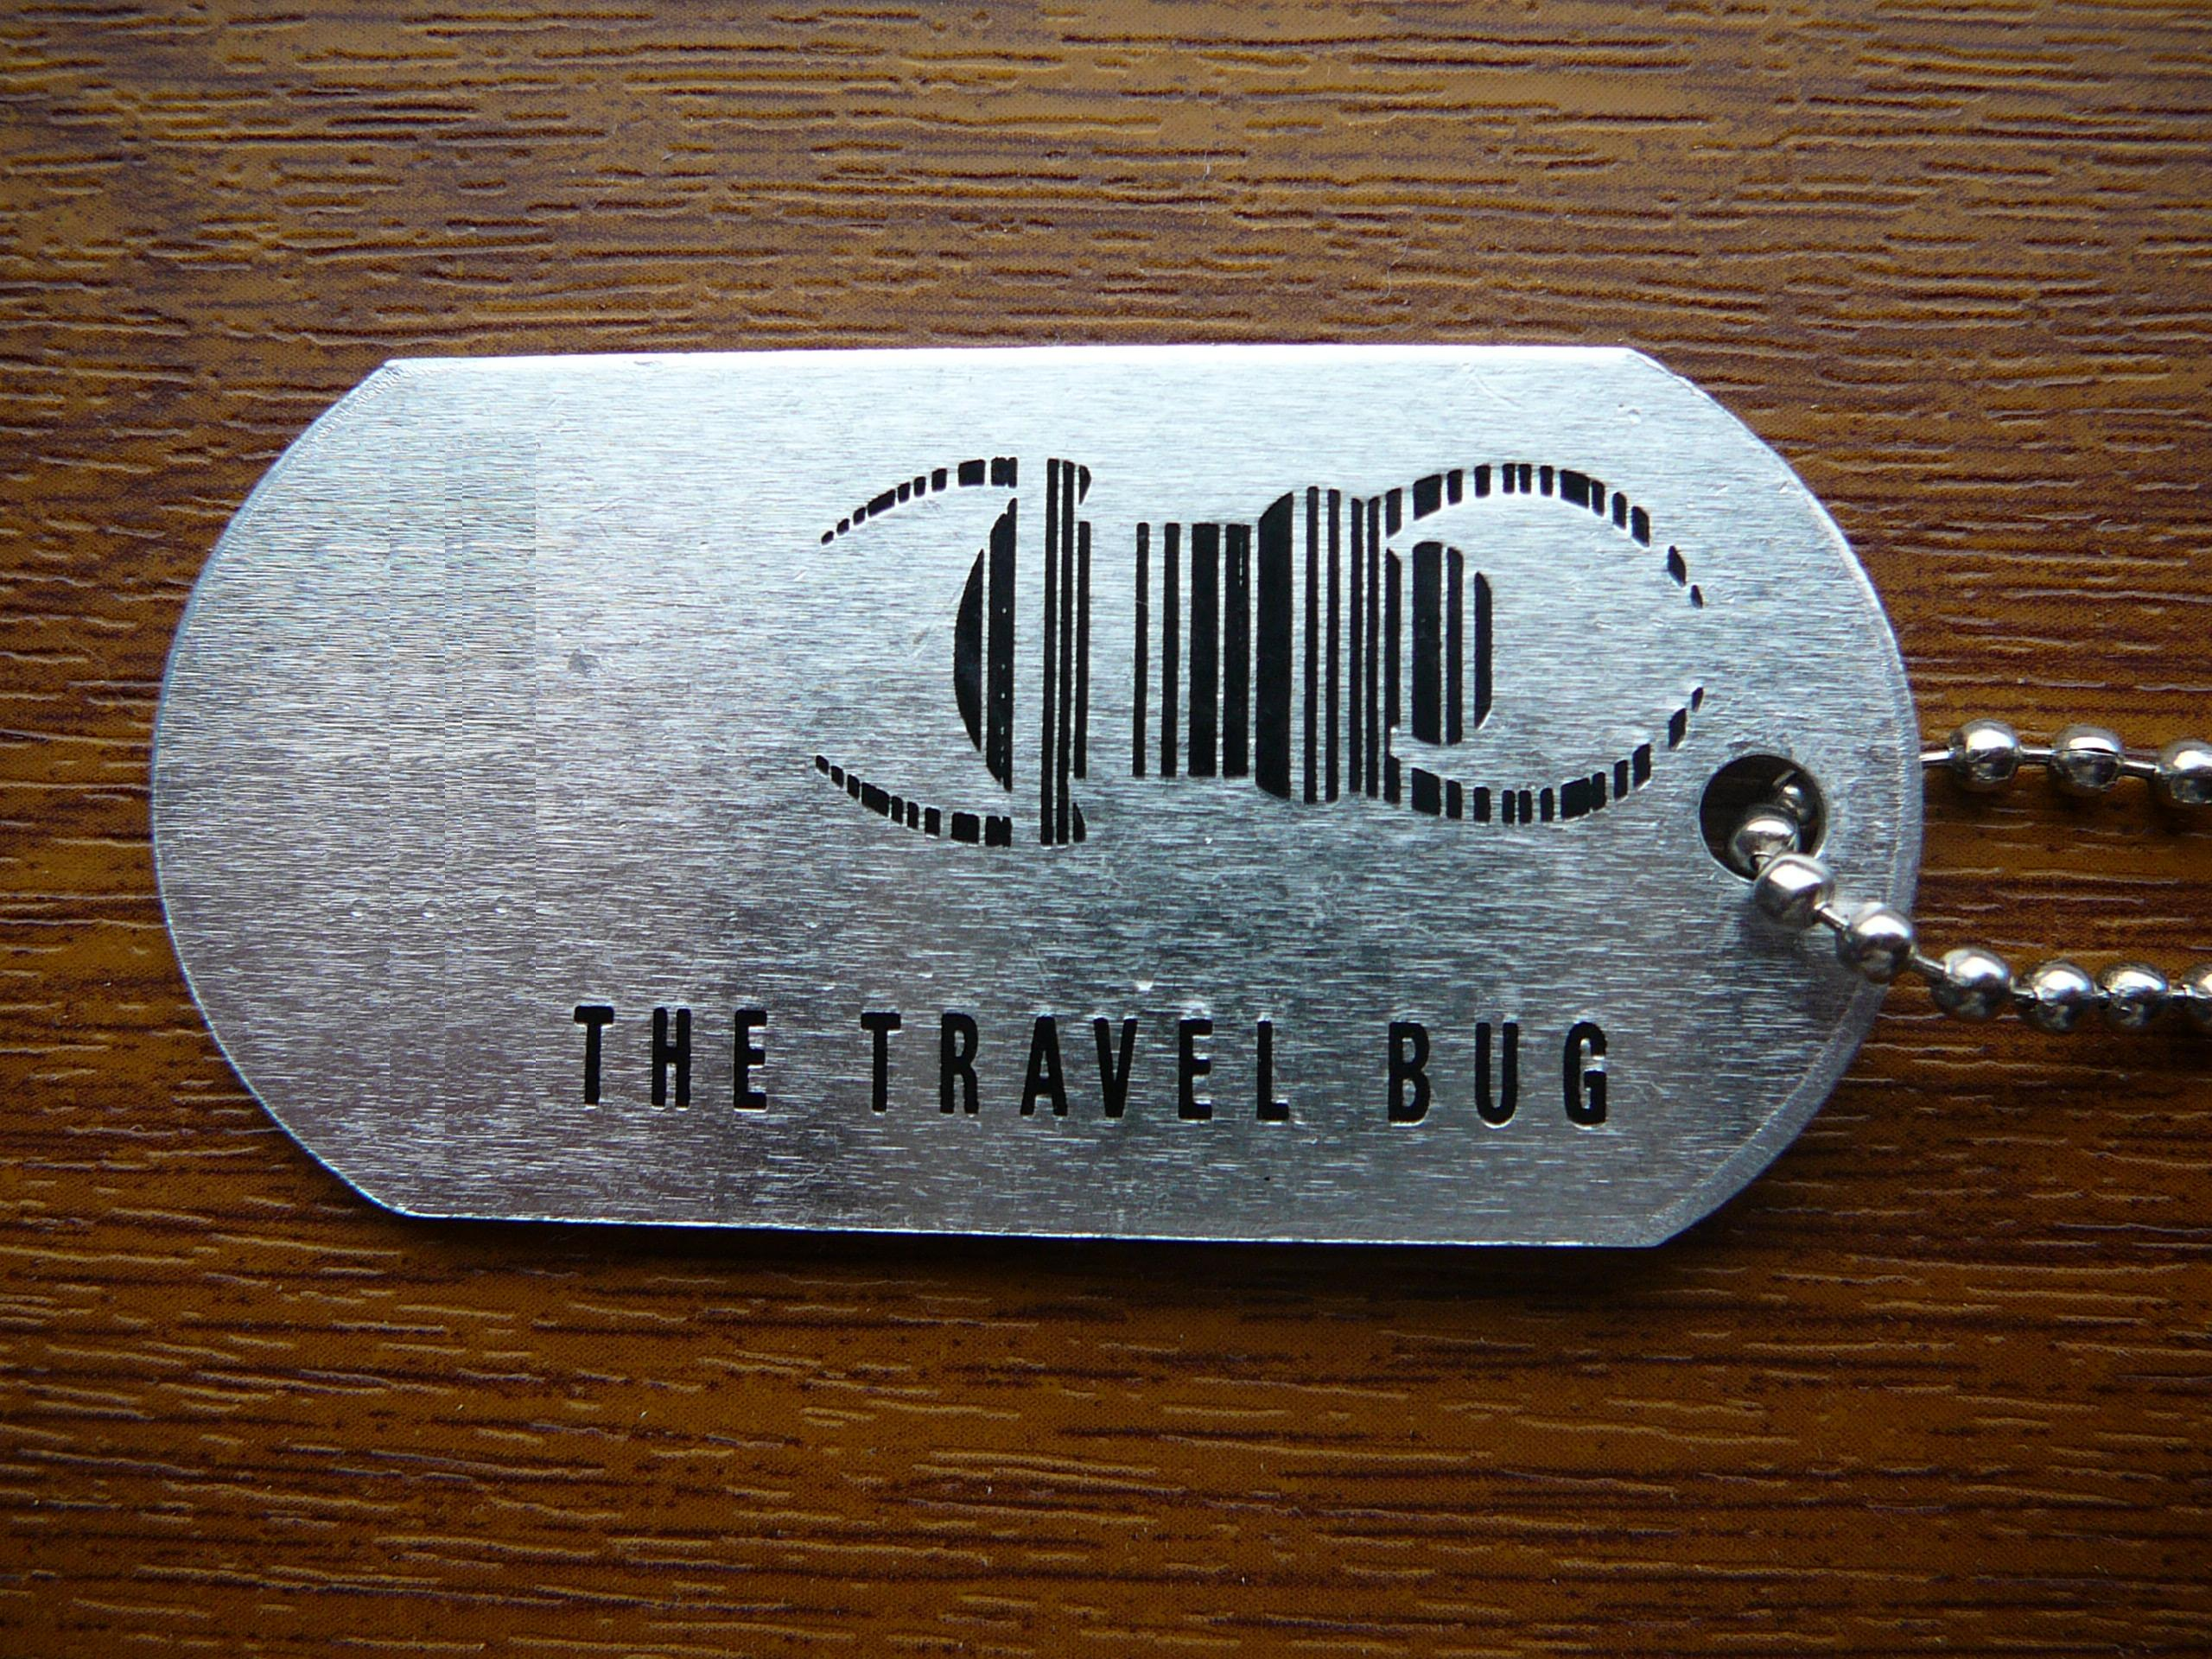 File:Travel Bug Front side.jpg - Wikimedia Commons